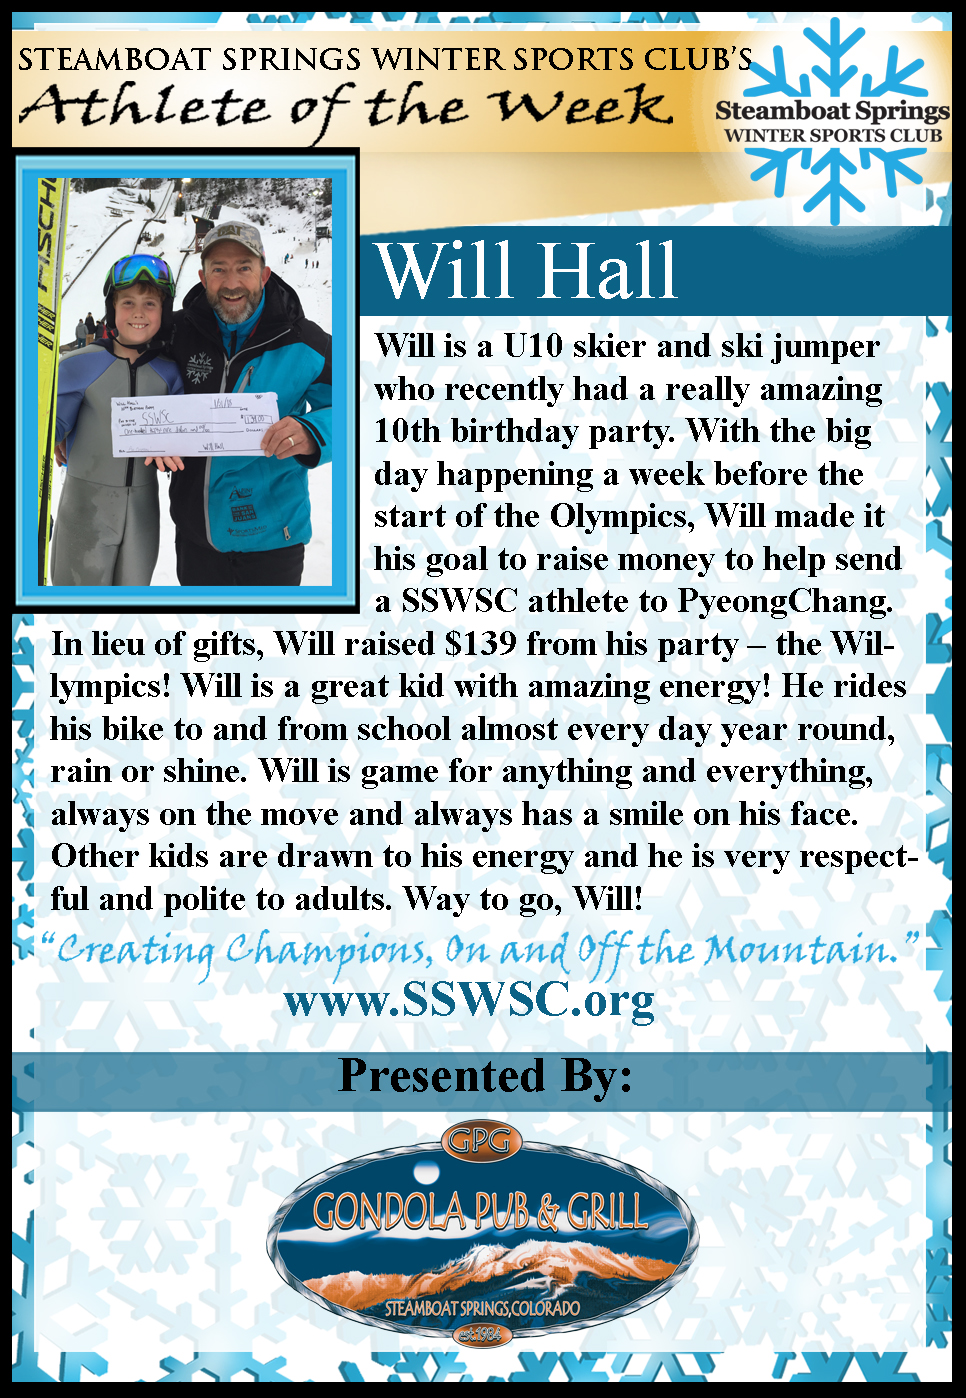 Athlete of the Week, Will Hall